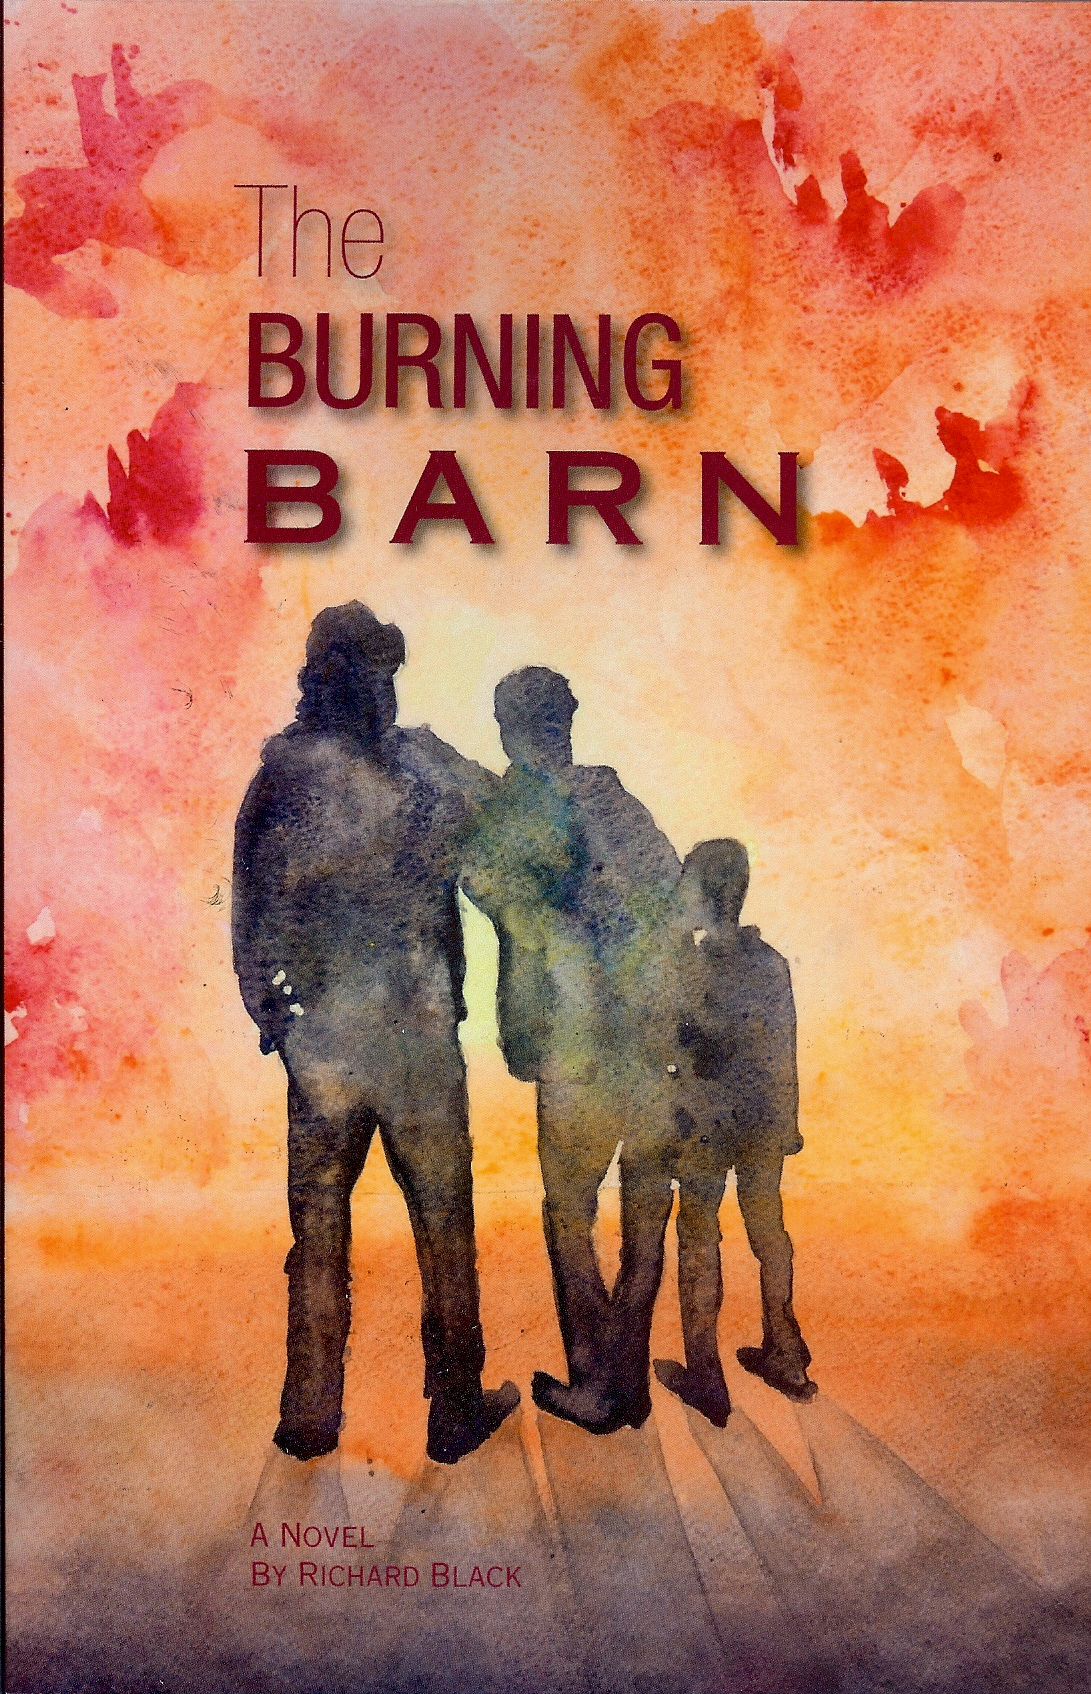 The Burning Barn